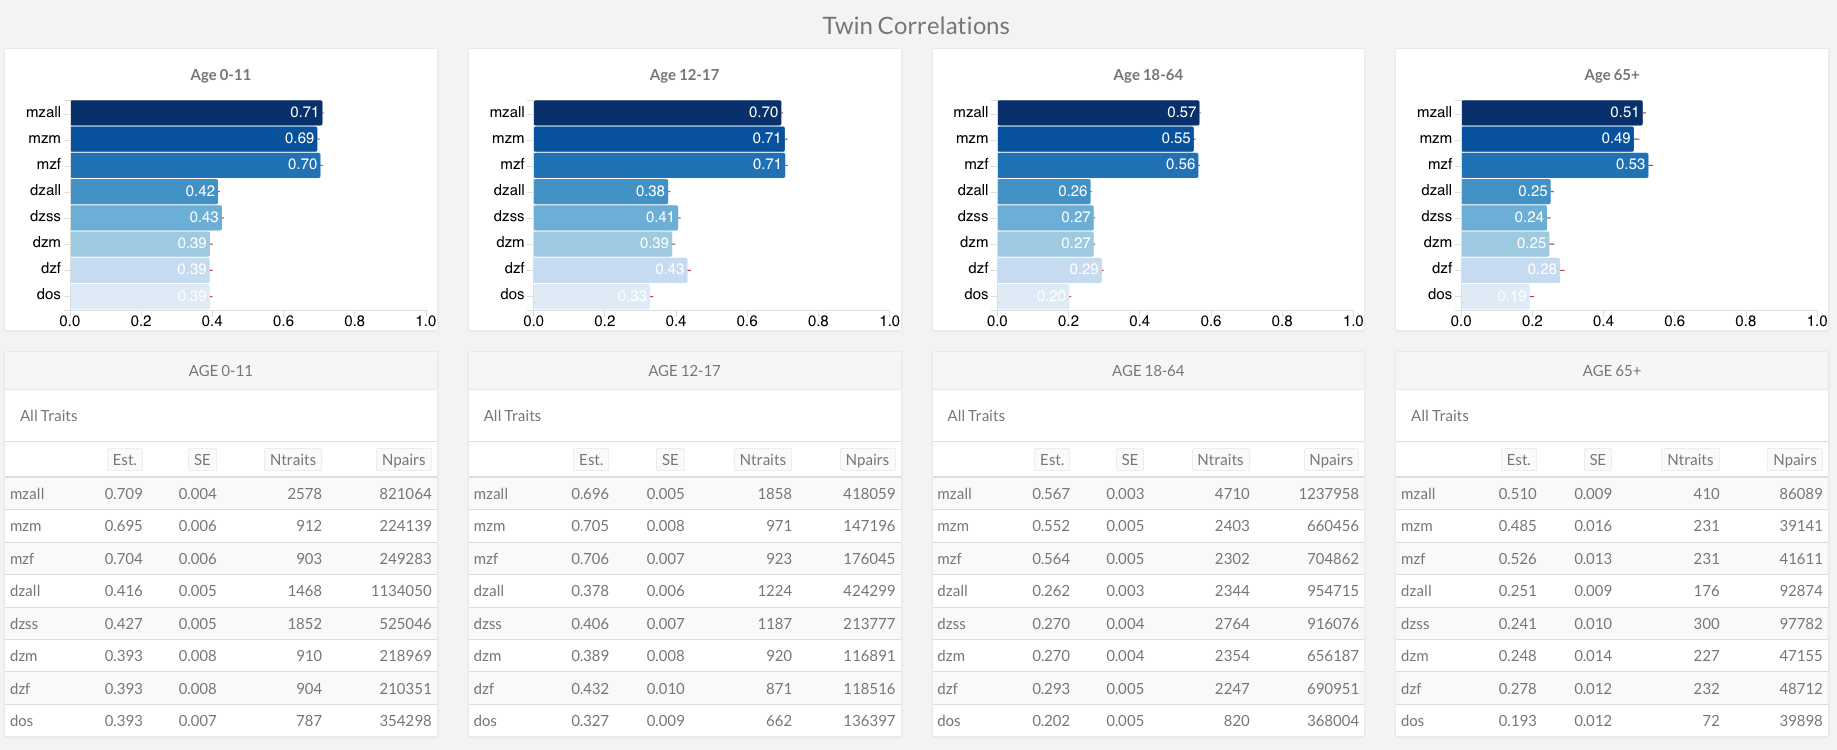 twin corrs by age group